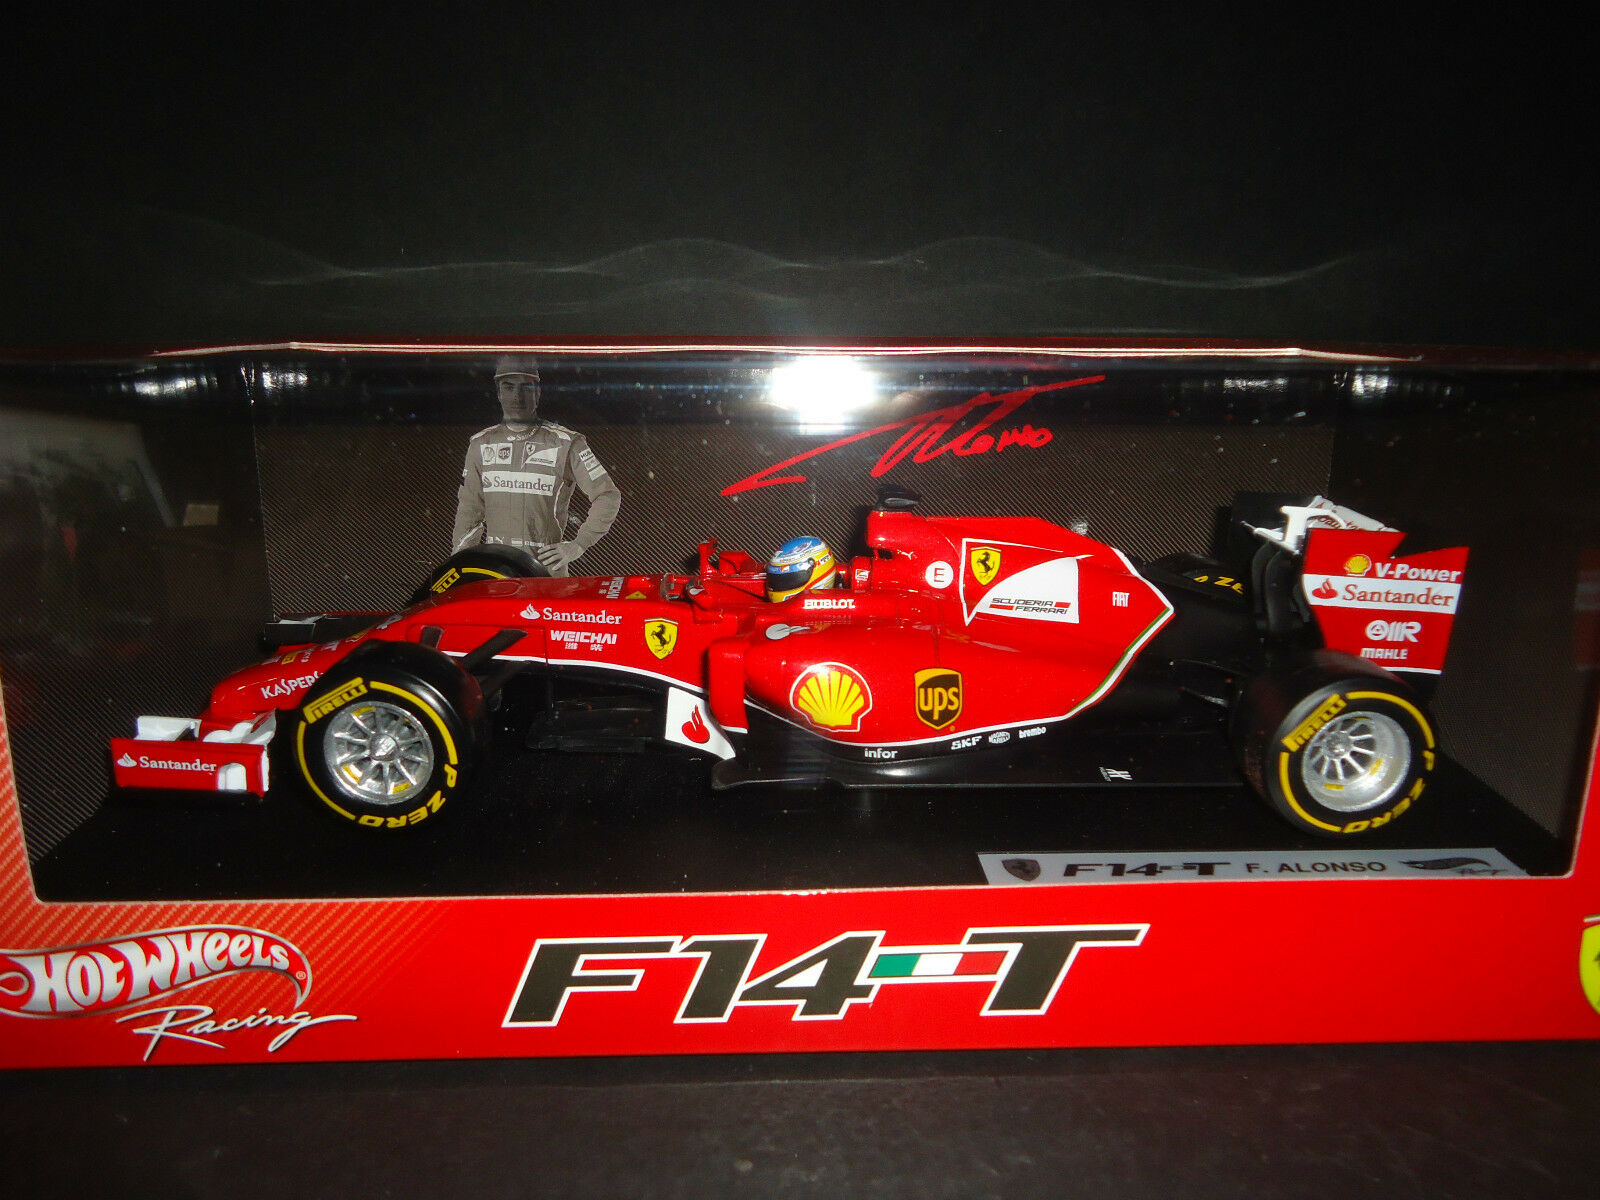 Hot Wheels Ferrari F1 F14 T 2014 Fernando Alonso BLY67 1 18